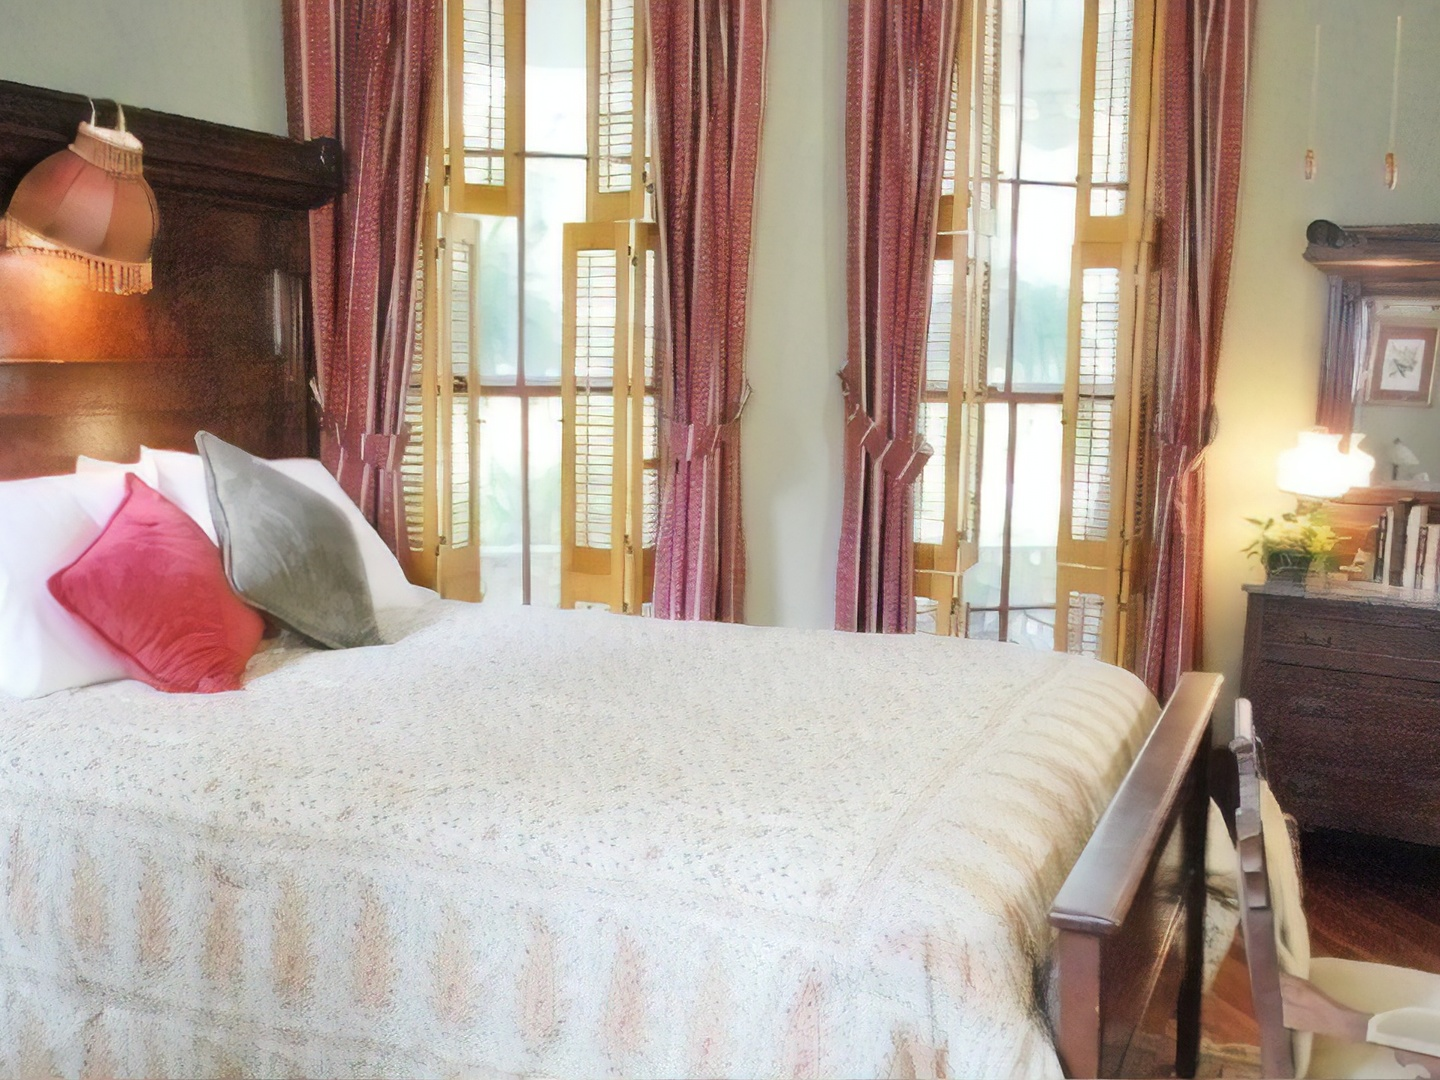 A bedroom with a large bed in a hotel room at Brady Inn.